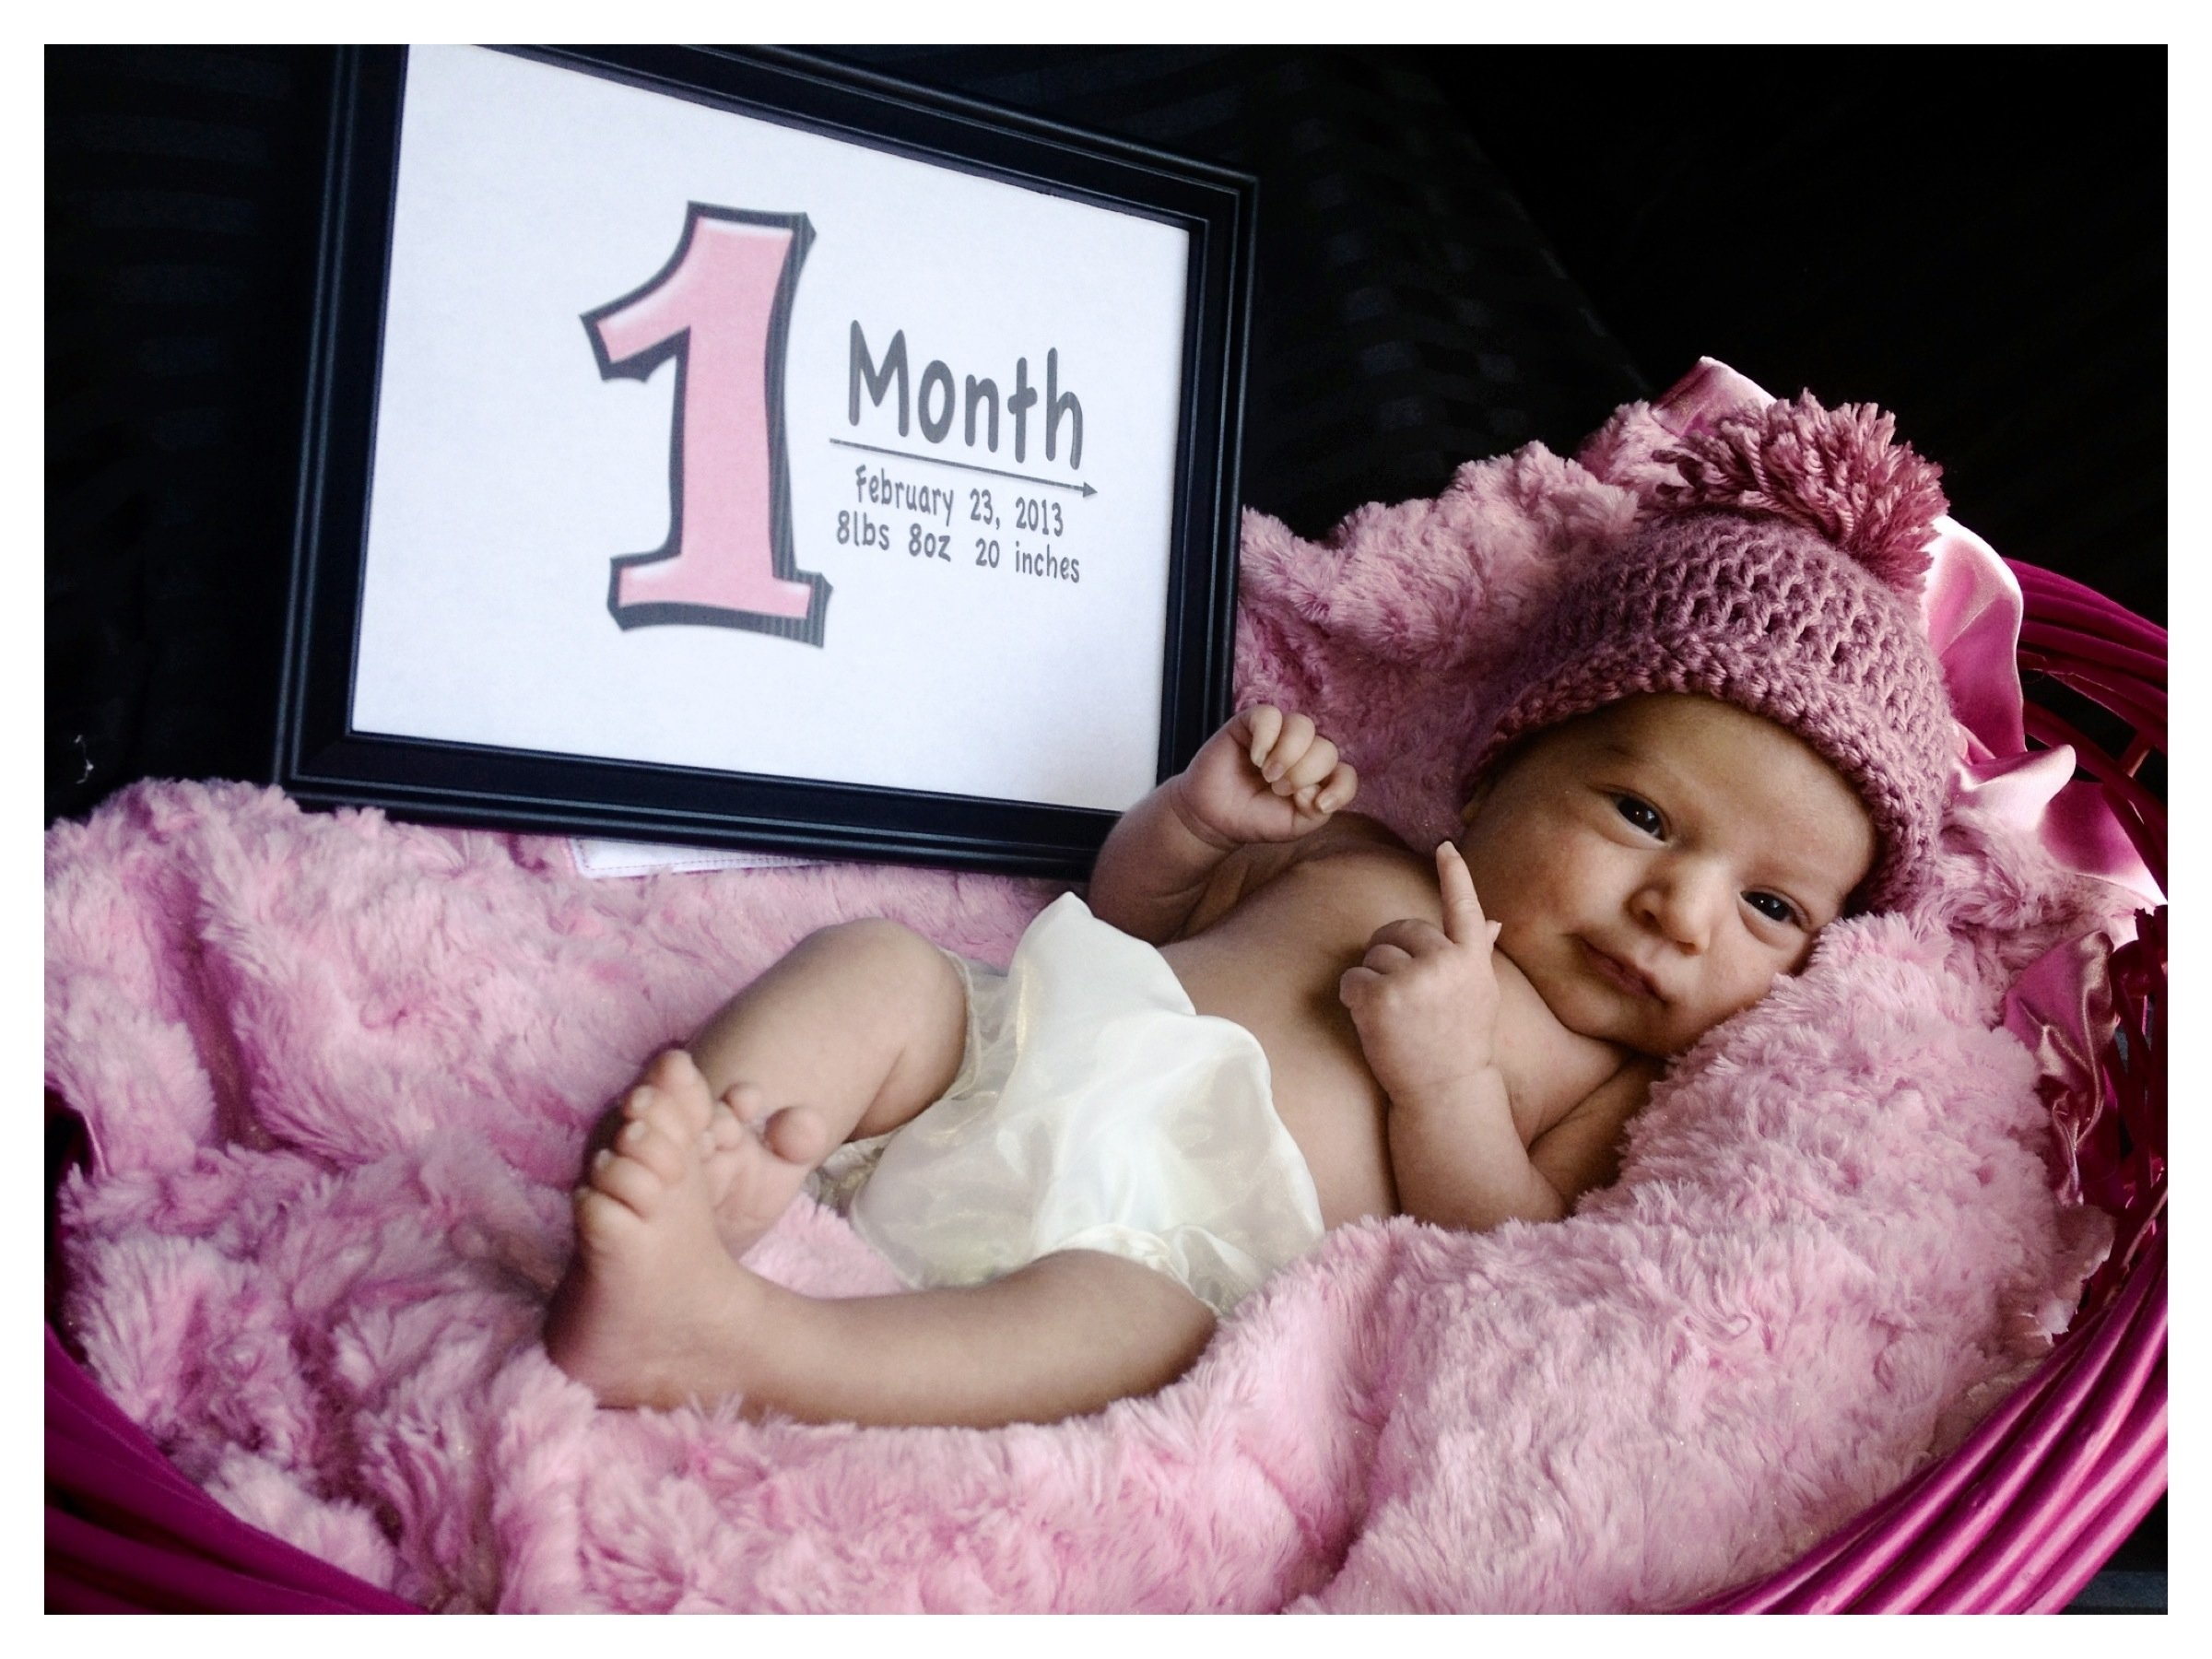 10 Unique 1 Month Baby Picture Ideas my baby girl 1 month old i put the current date weight length 1 2021